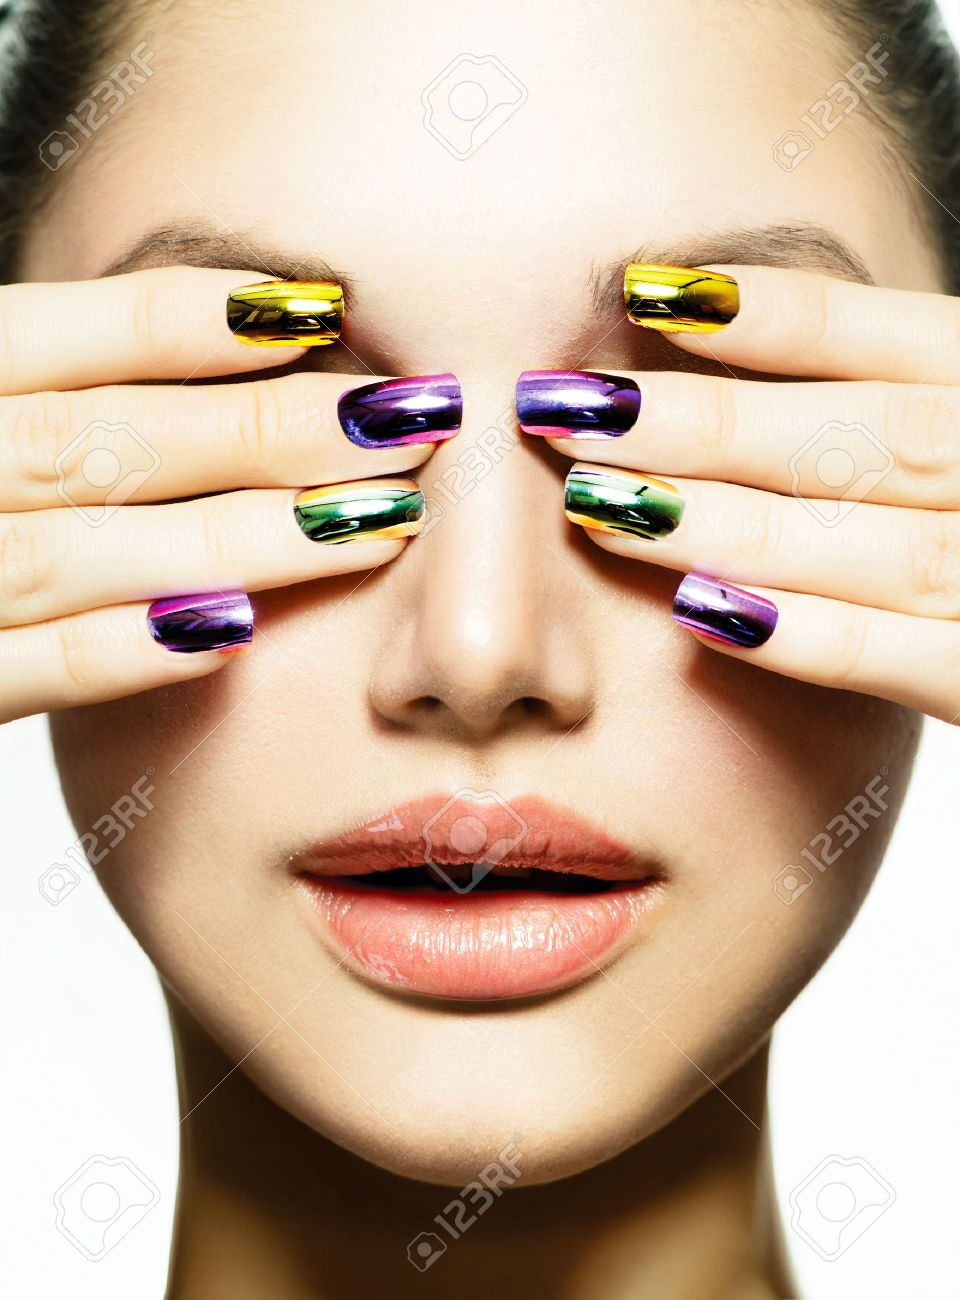 Manicure And Make-up Nail Art Beauty Woman With Colorful Nails Stock ...